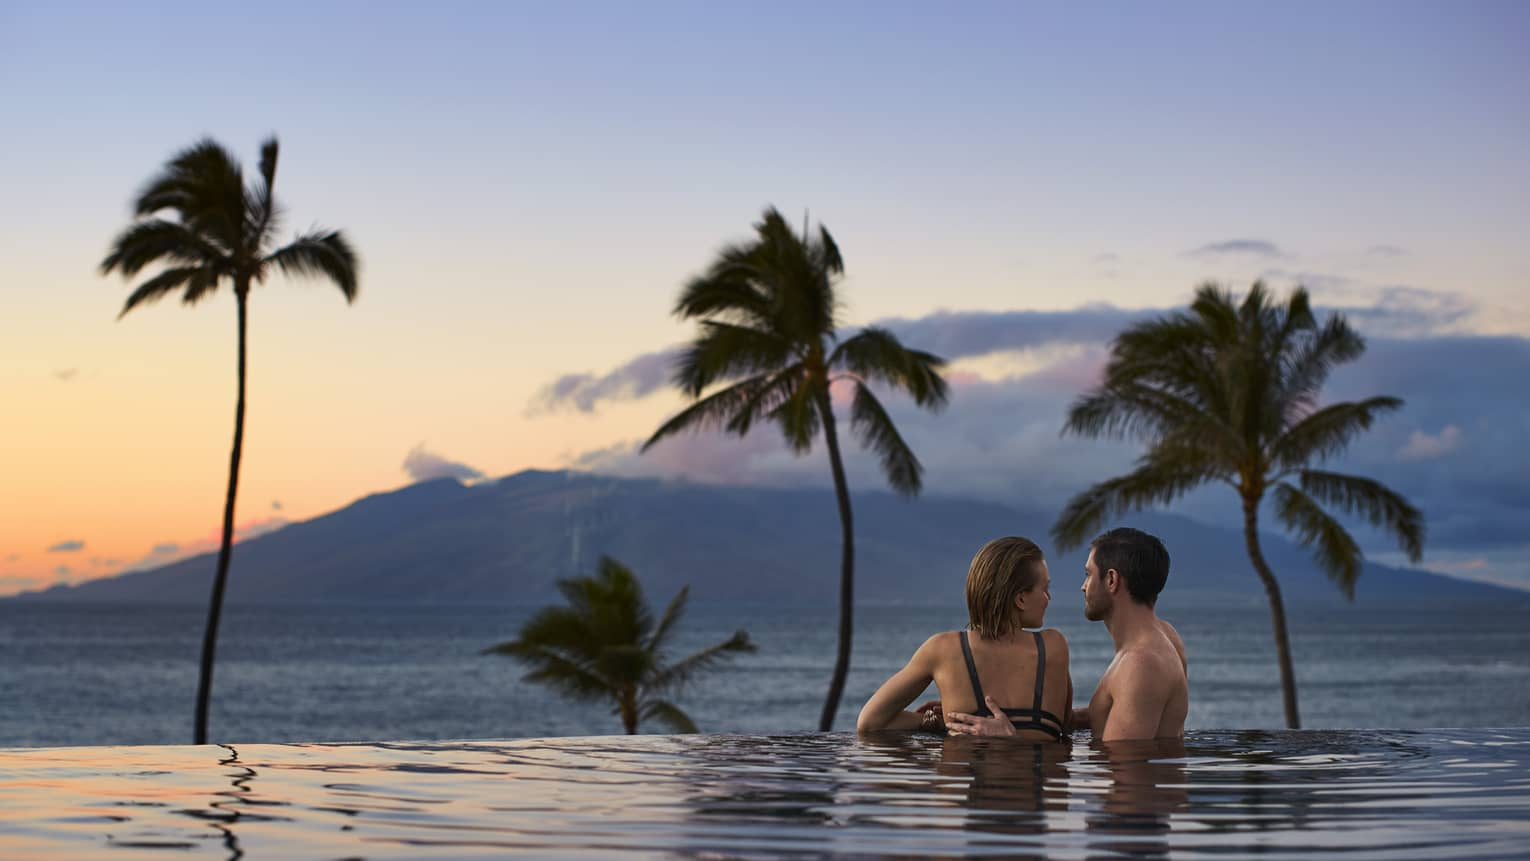 A man and woman stand close together in the serenity pool, overlooking sunset over the ocean